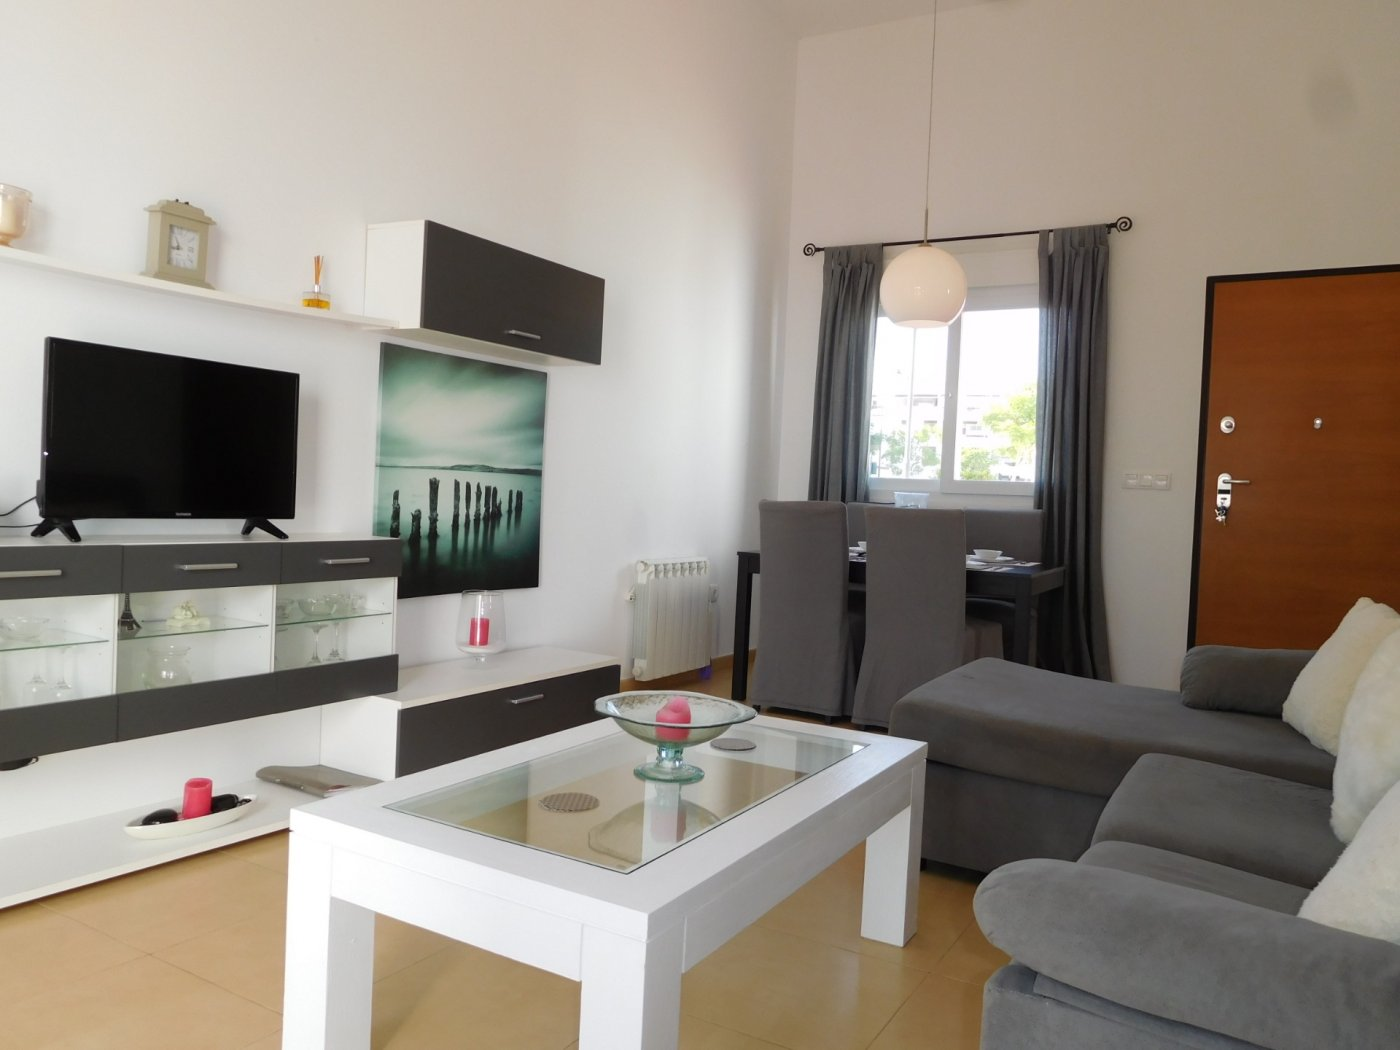 Gallery Image 7 of Casa For rent in Condado De Alhama, Alhama De Murcia With Pool